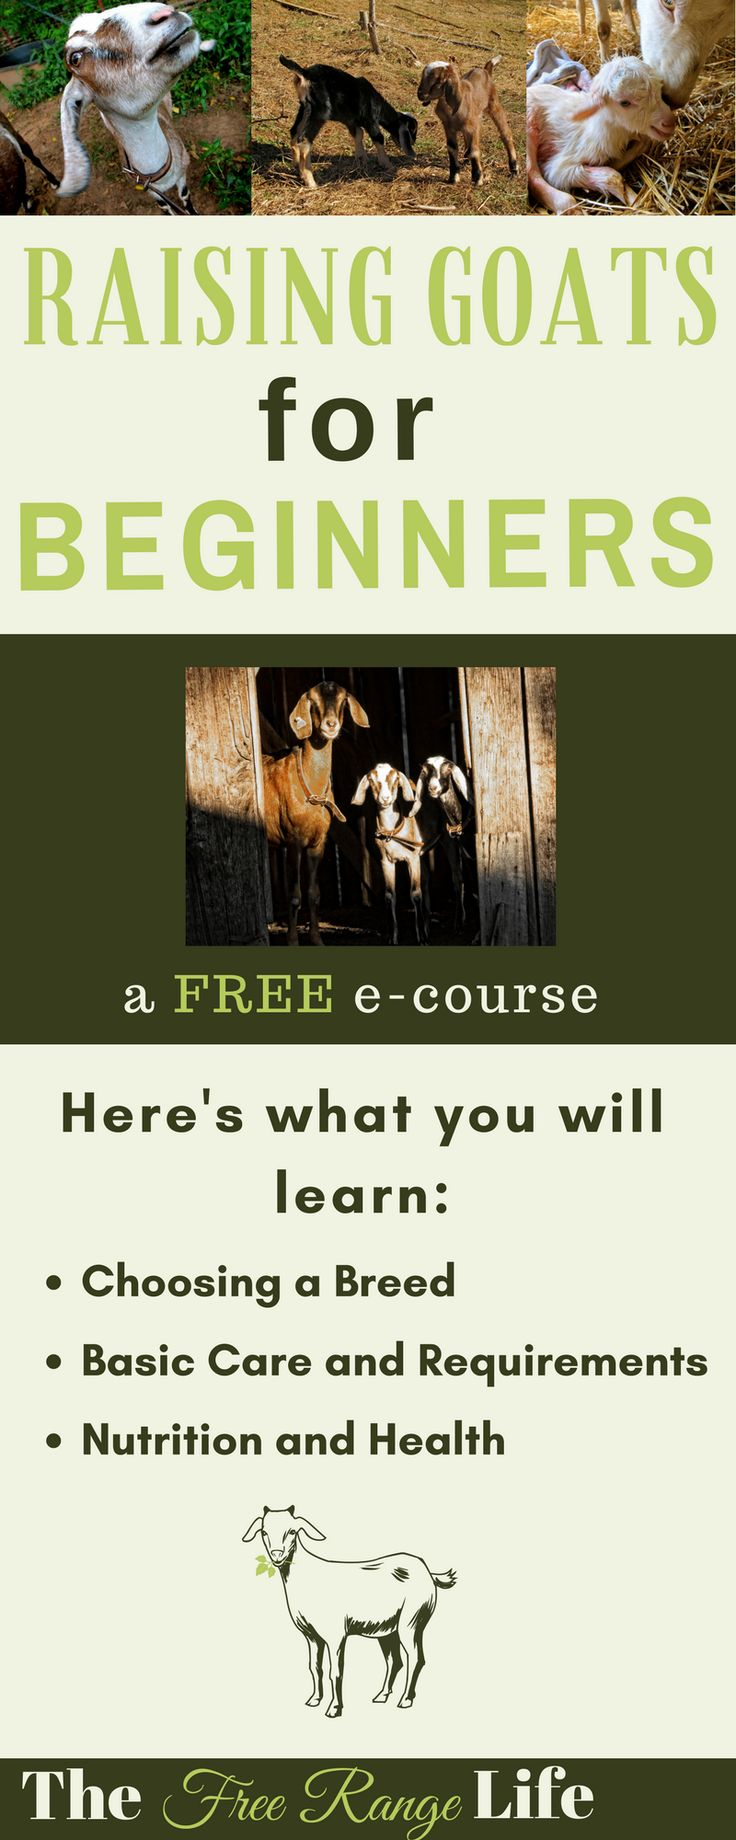 Do you raise goats? or want to raise goats? Check out my free e-course and learn the basics of raising goats for beginners!